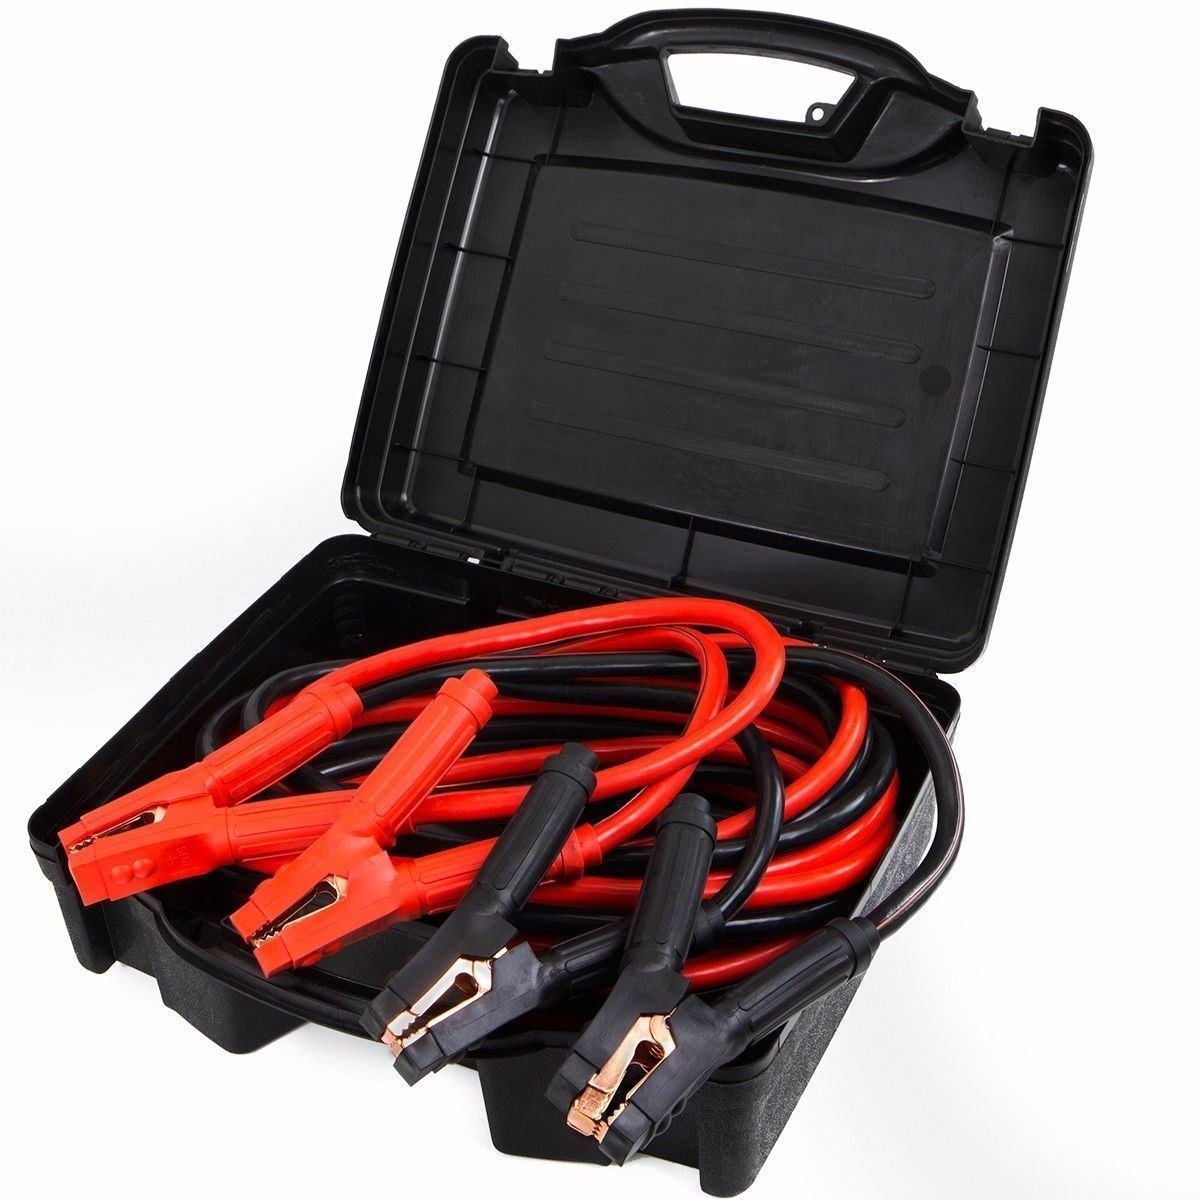 New Comercial Heavy Duty 25 FT 0 Gauge Booster Cable Cables Emergency Power Jumper MTN Gearsmith